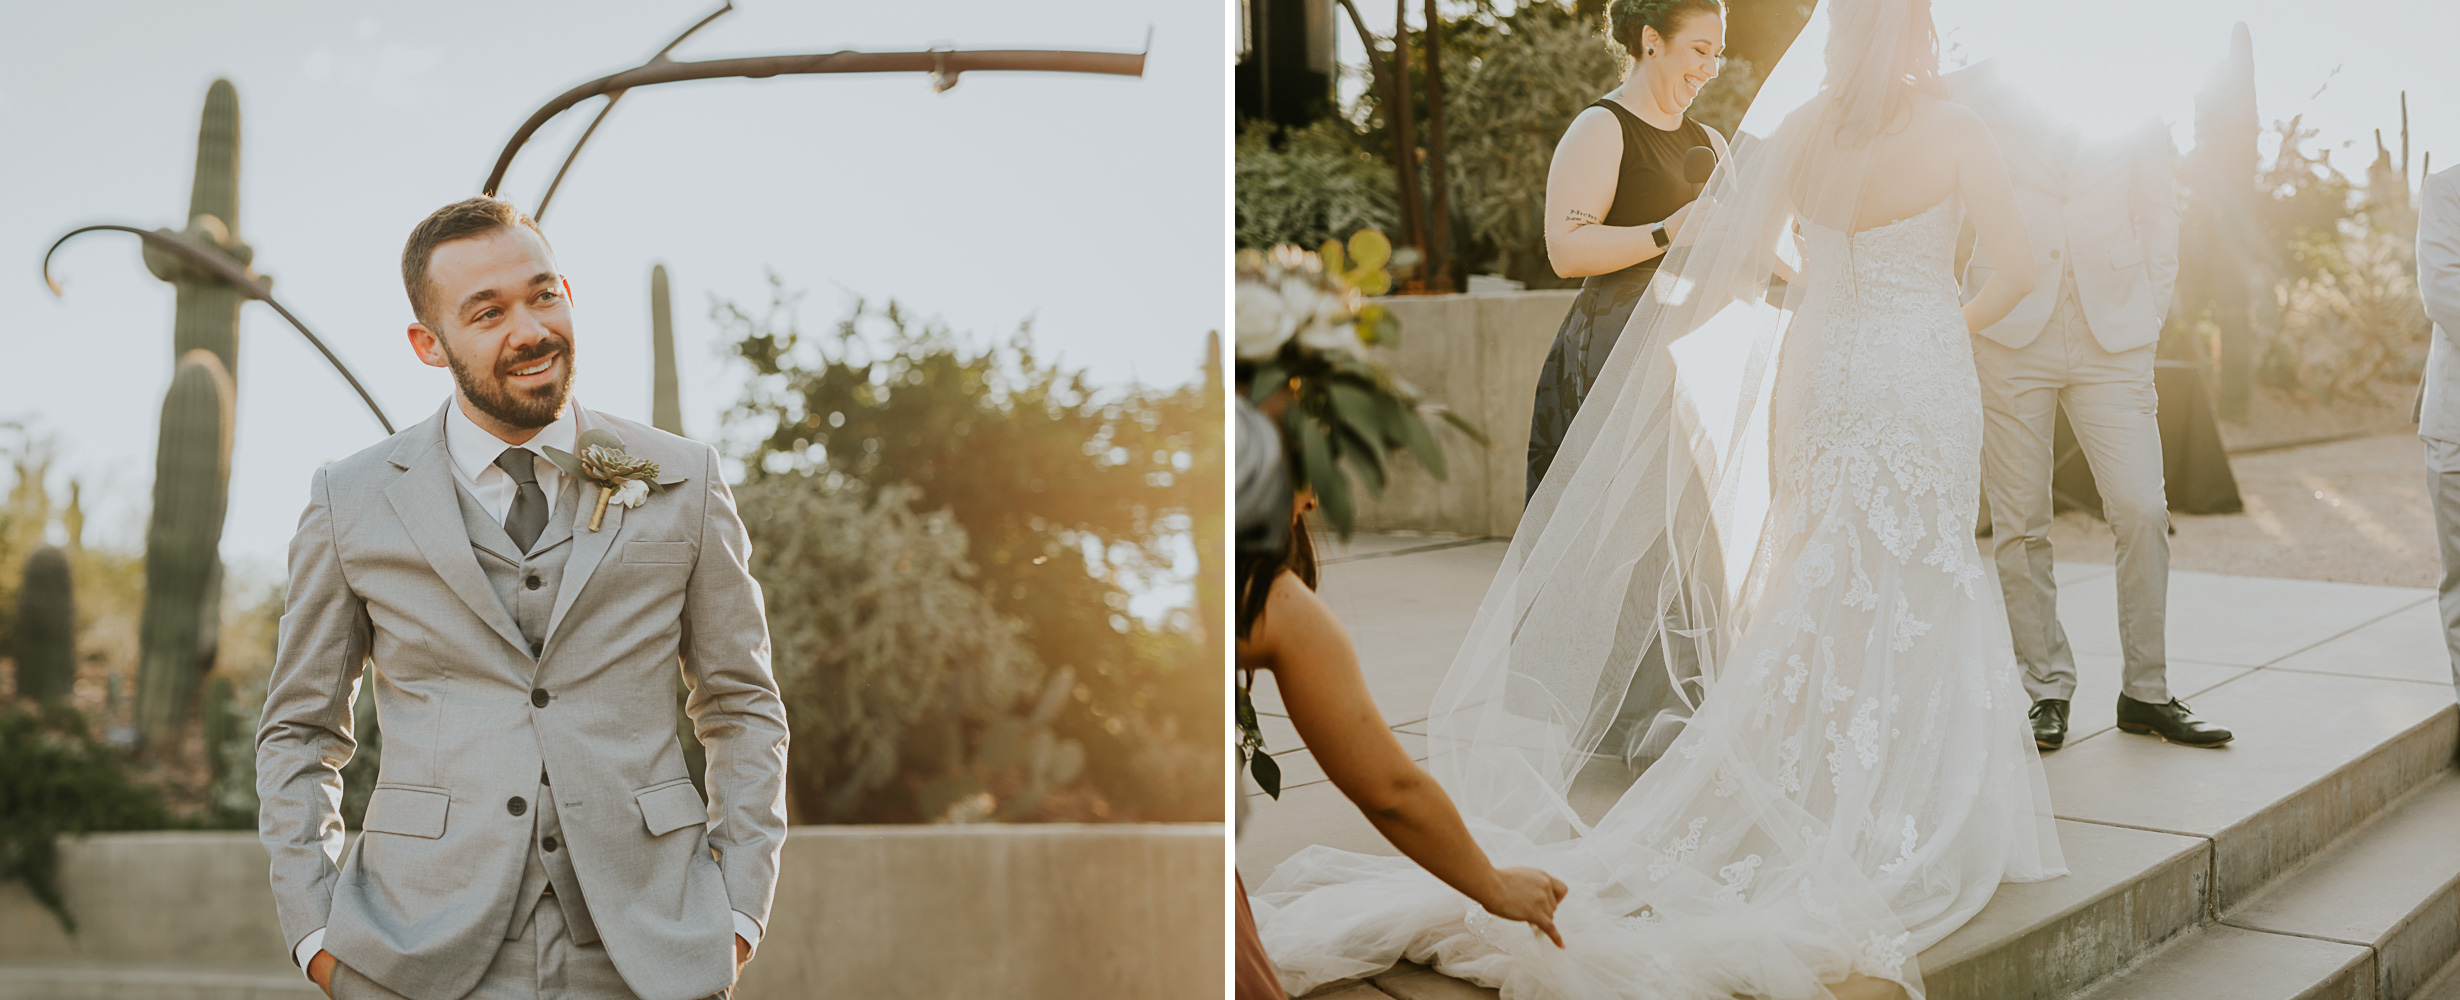 Desert Botanical Garden Wedding Denver Wedding Photographer Elopements 4